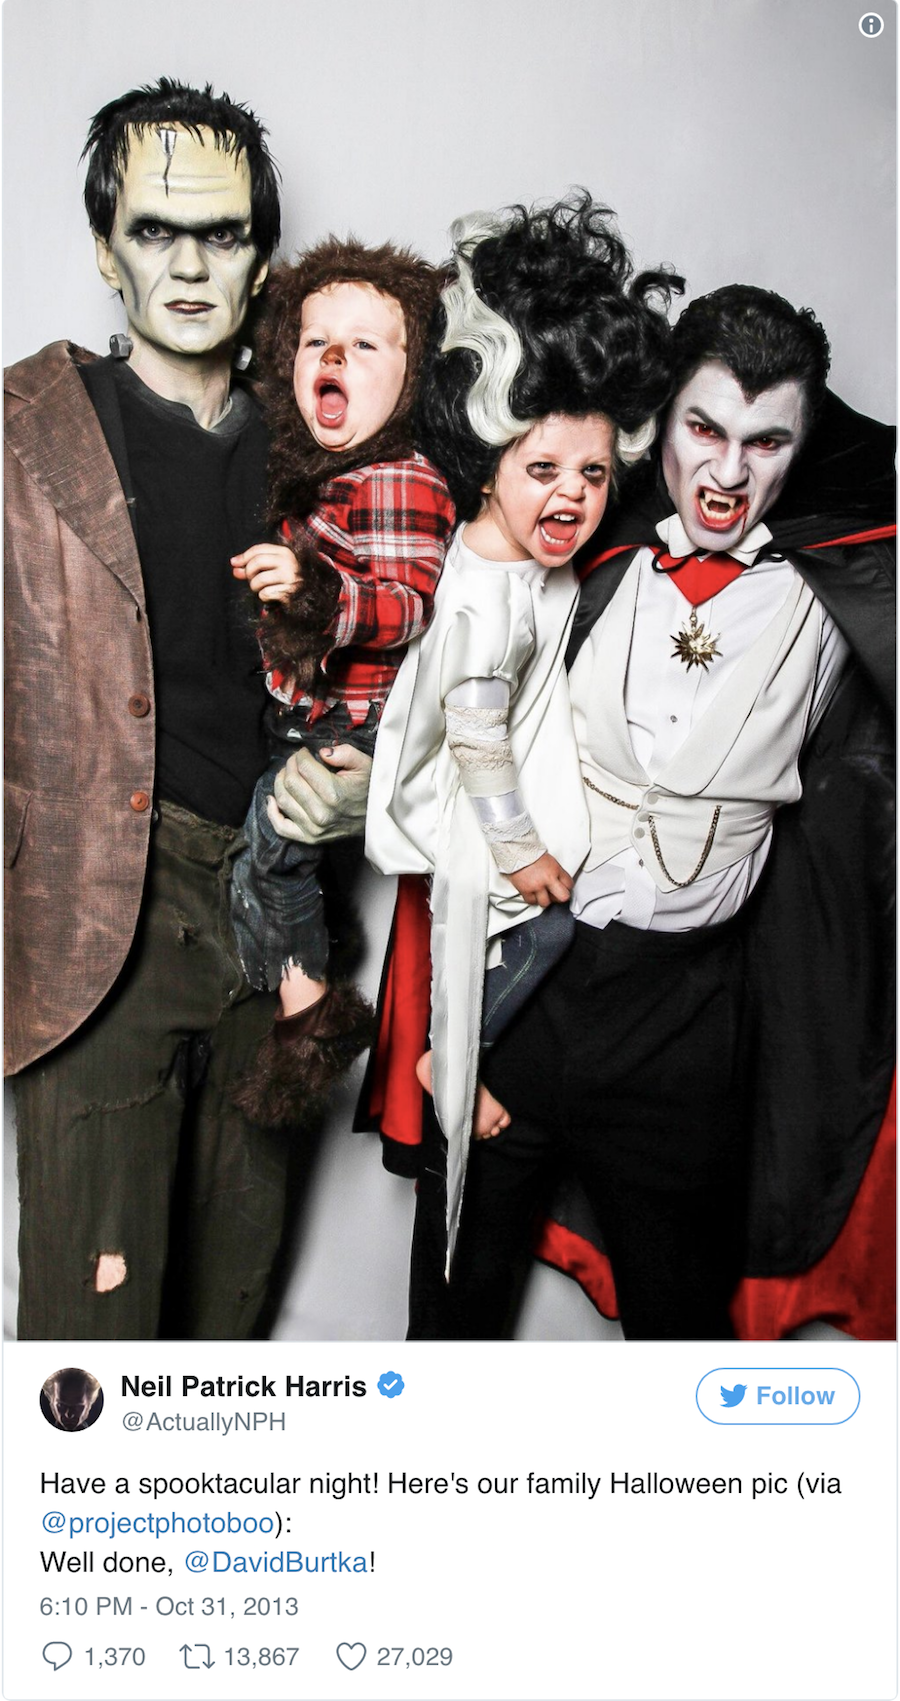 neil-patrick-harris-halloween-costume-2013-part-1